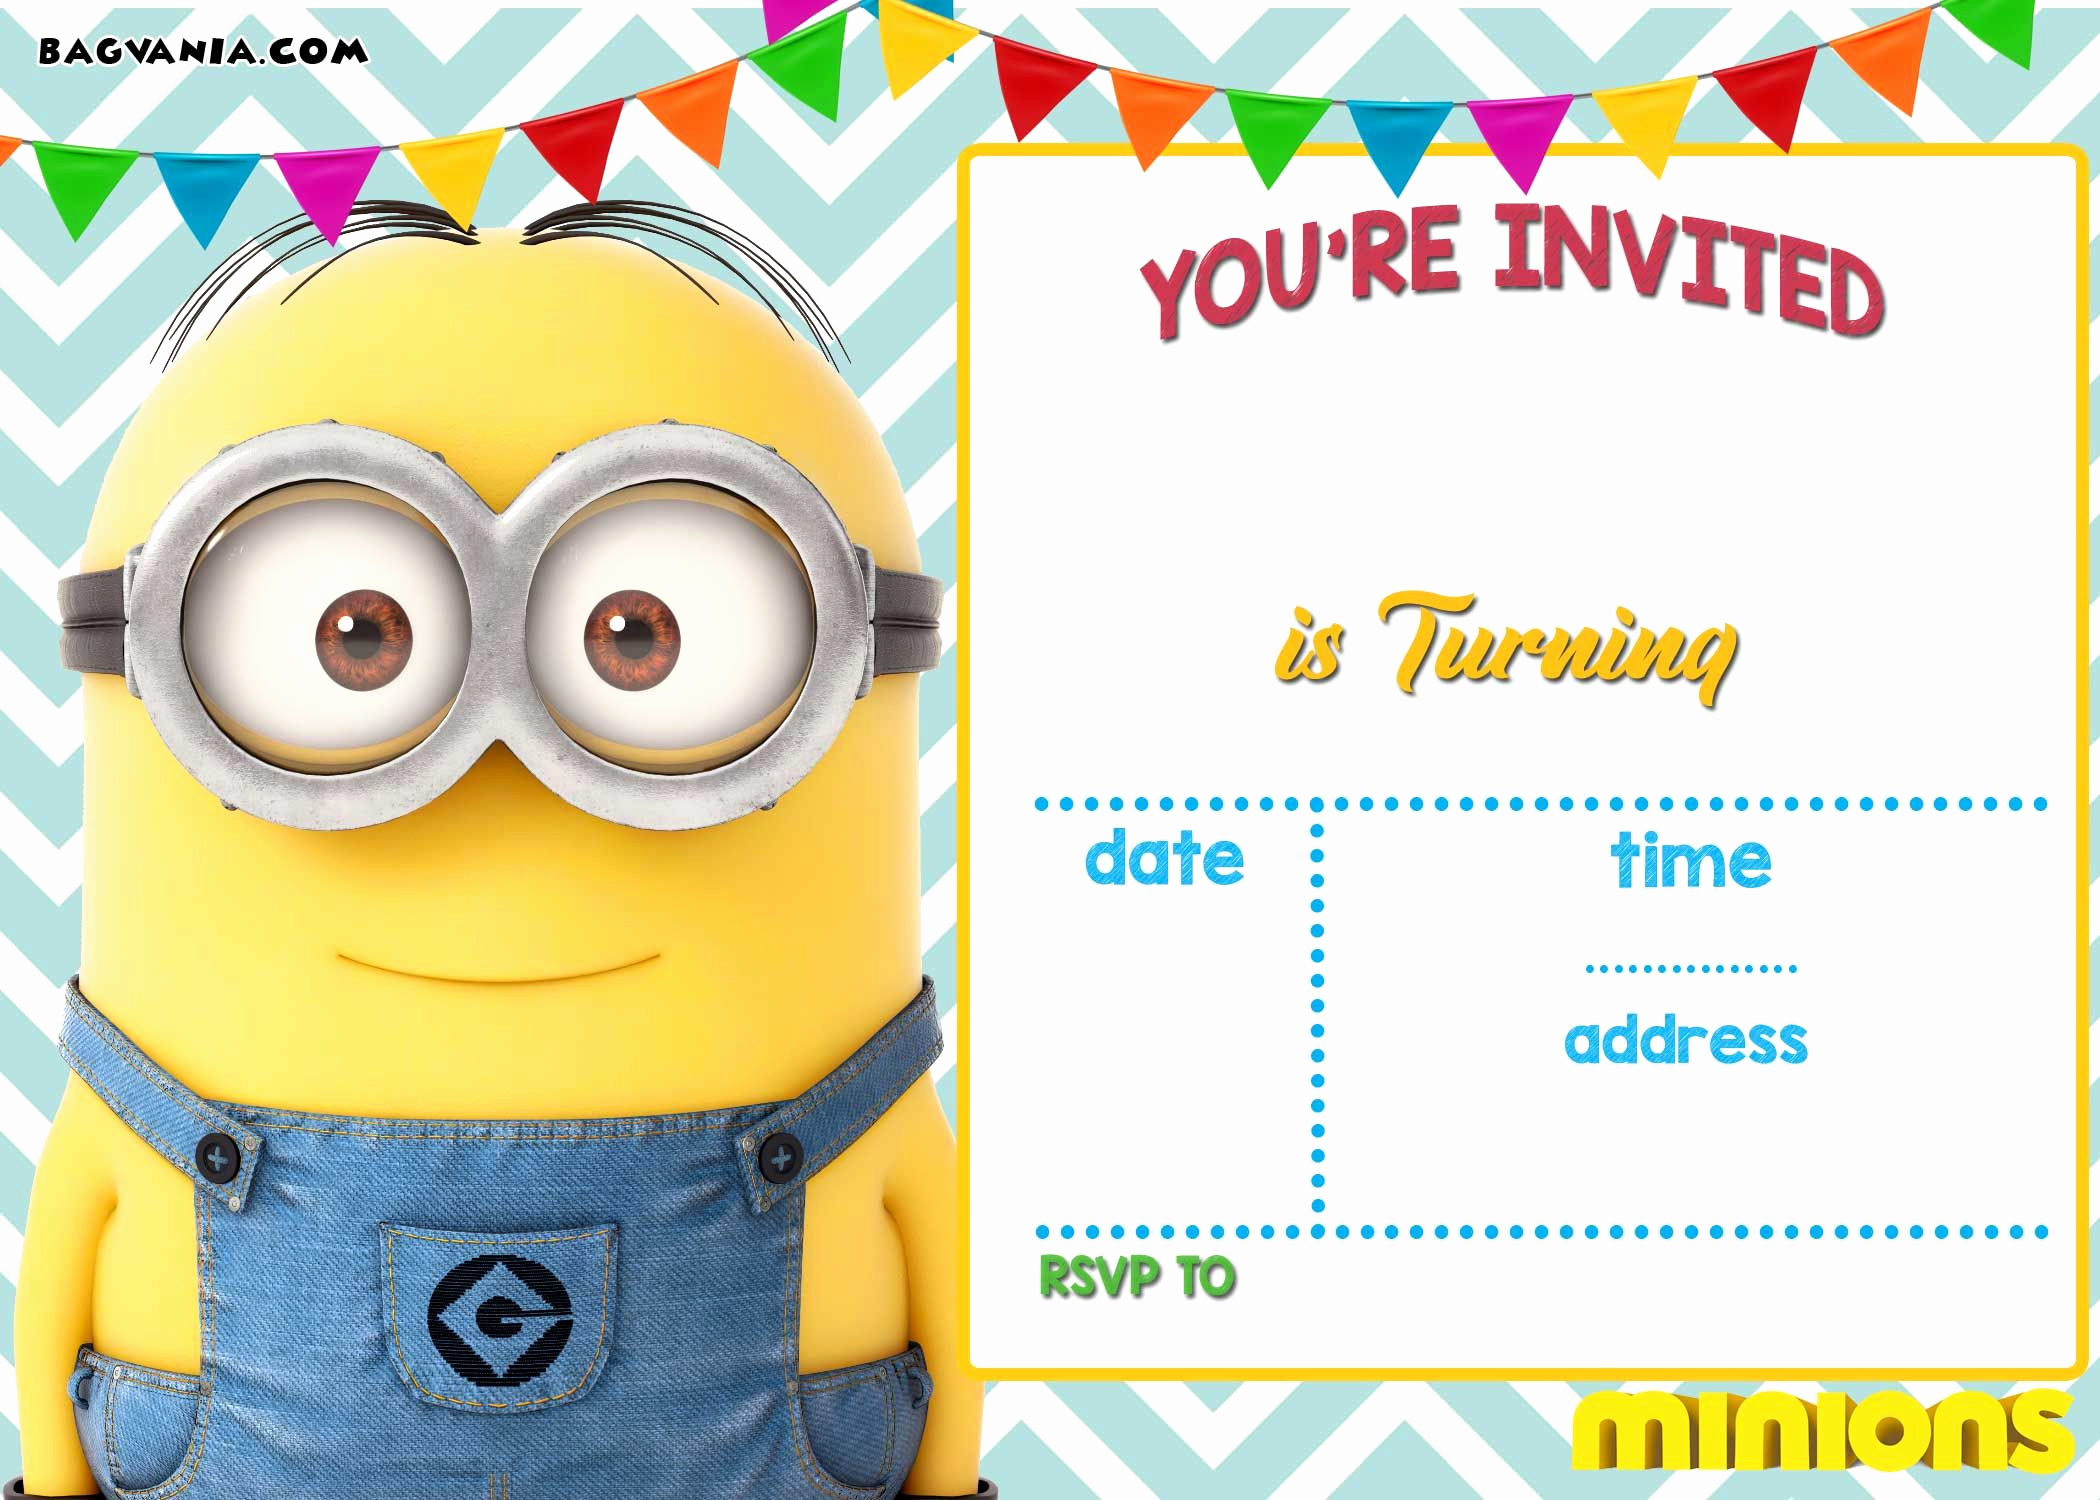 Minions Birthday Invitation Cards Beautiful Download now Free Printable Minion Birthday Invitation